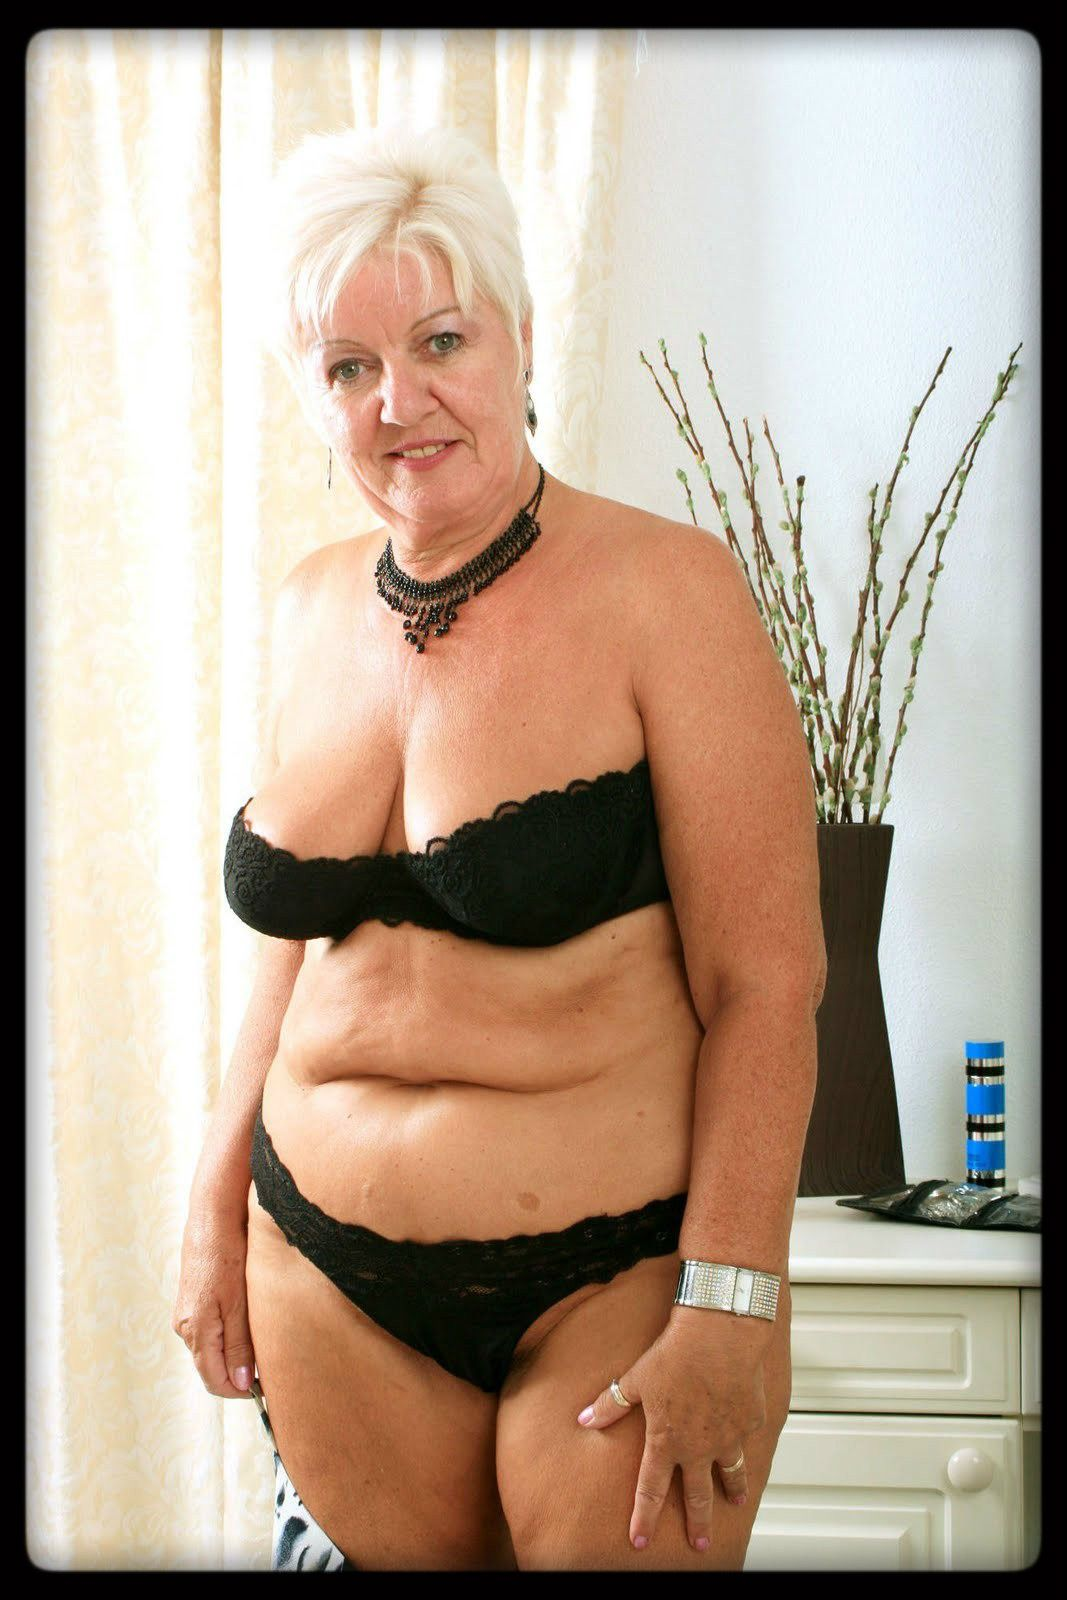 bbw granny in black bra and panties | mature | pinterest | black bra